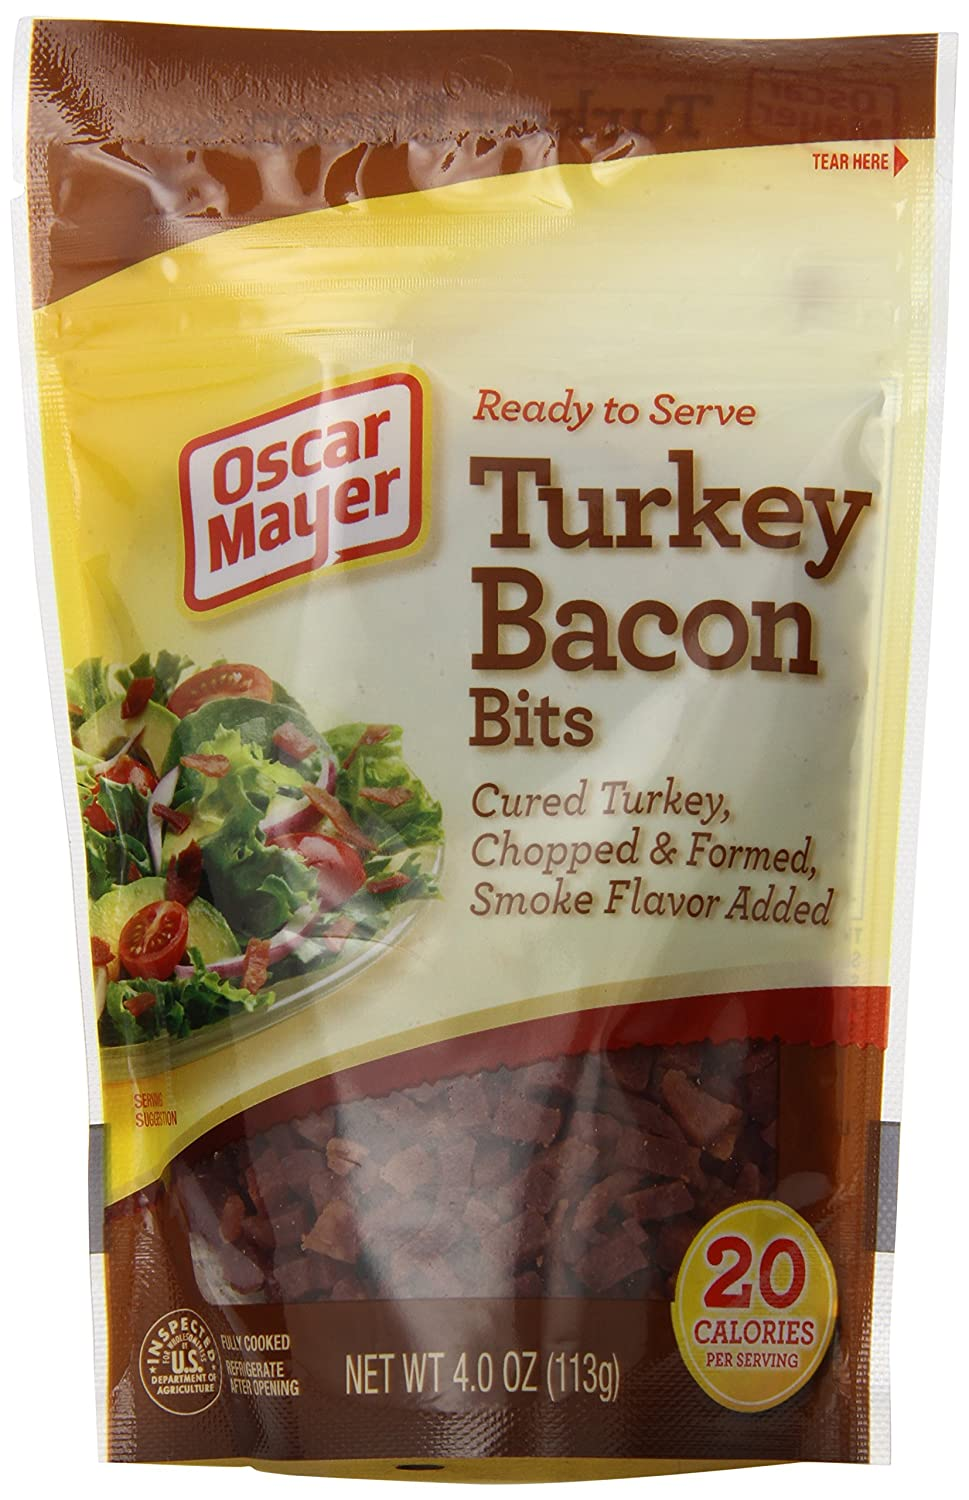 Bacon Hot Dogs Sausage likewise Delicious Recipes Labor Day Weekend together with Oscar Mayer in addition Kraft Recalls 2m Pounds Of Turkey Bacon That May Spoil Early as well Oscar Mayer Turkey Bacon 4 X 12 Oz. on oscar mayer turkey bacon uncured